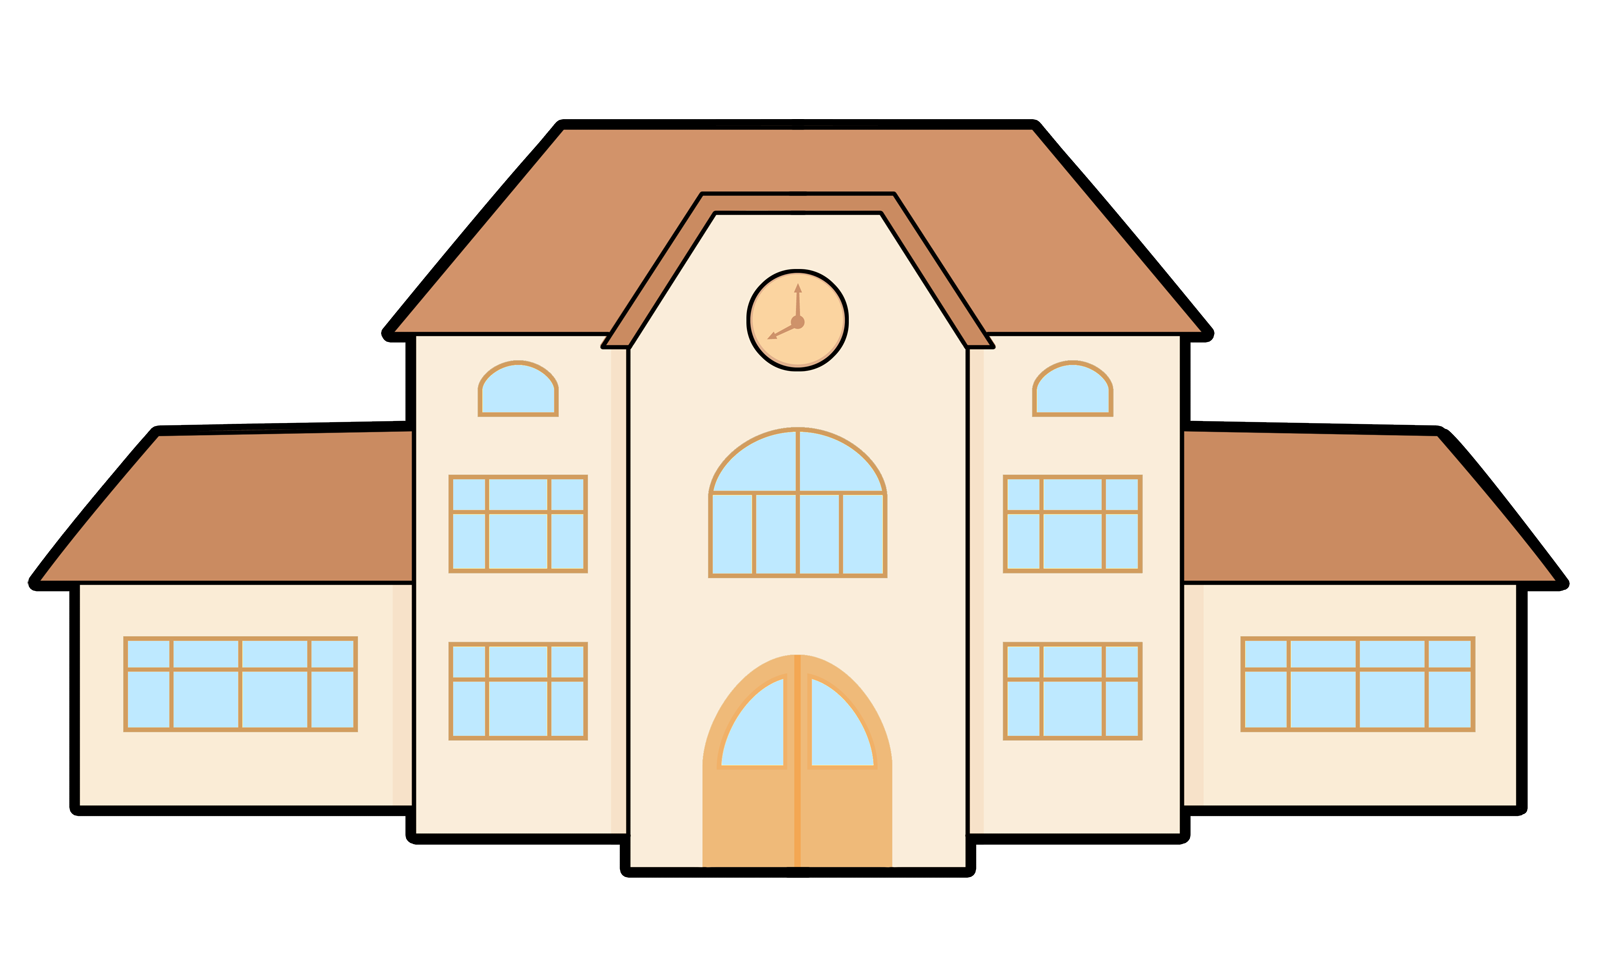 cartoon buildings png